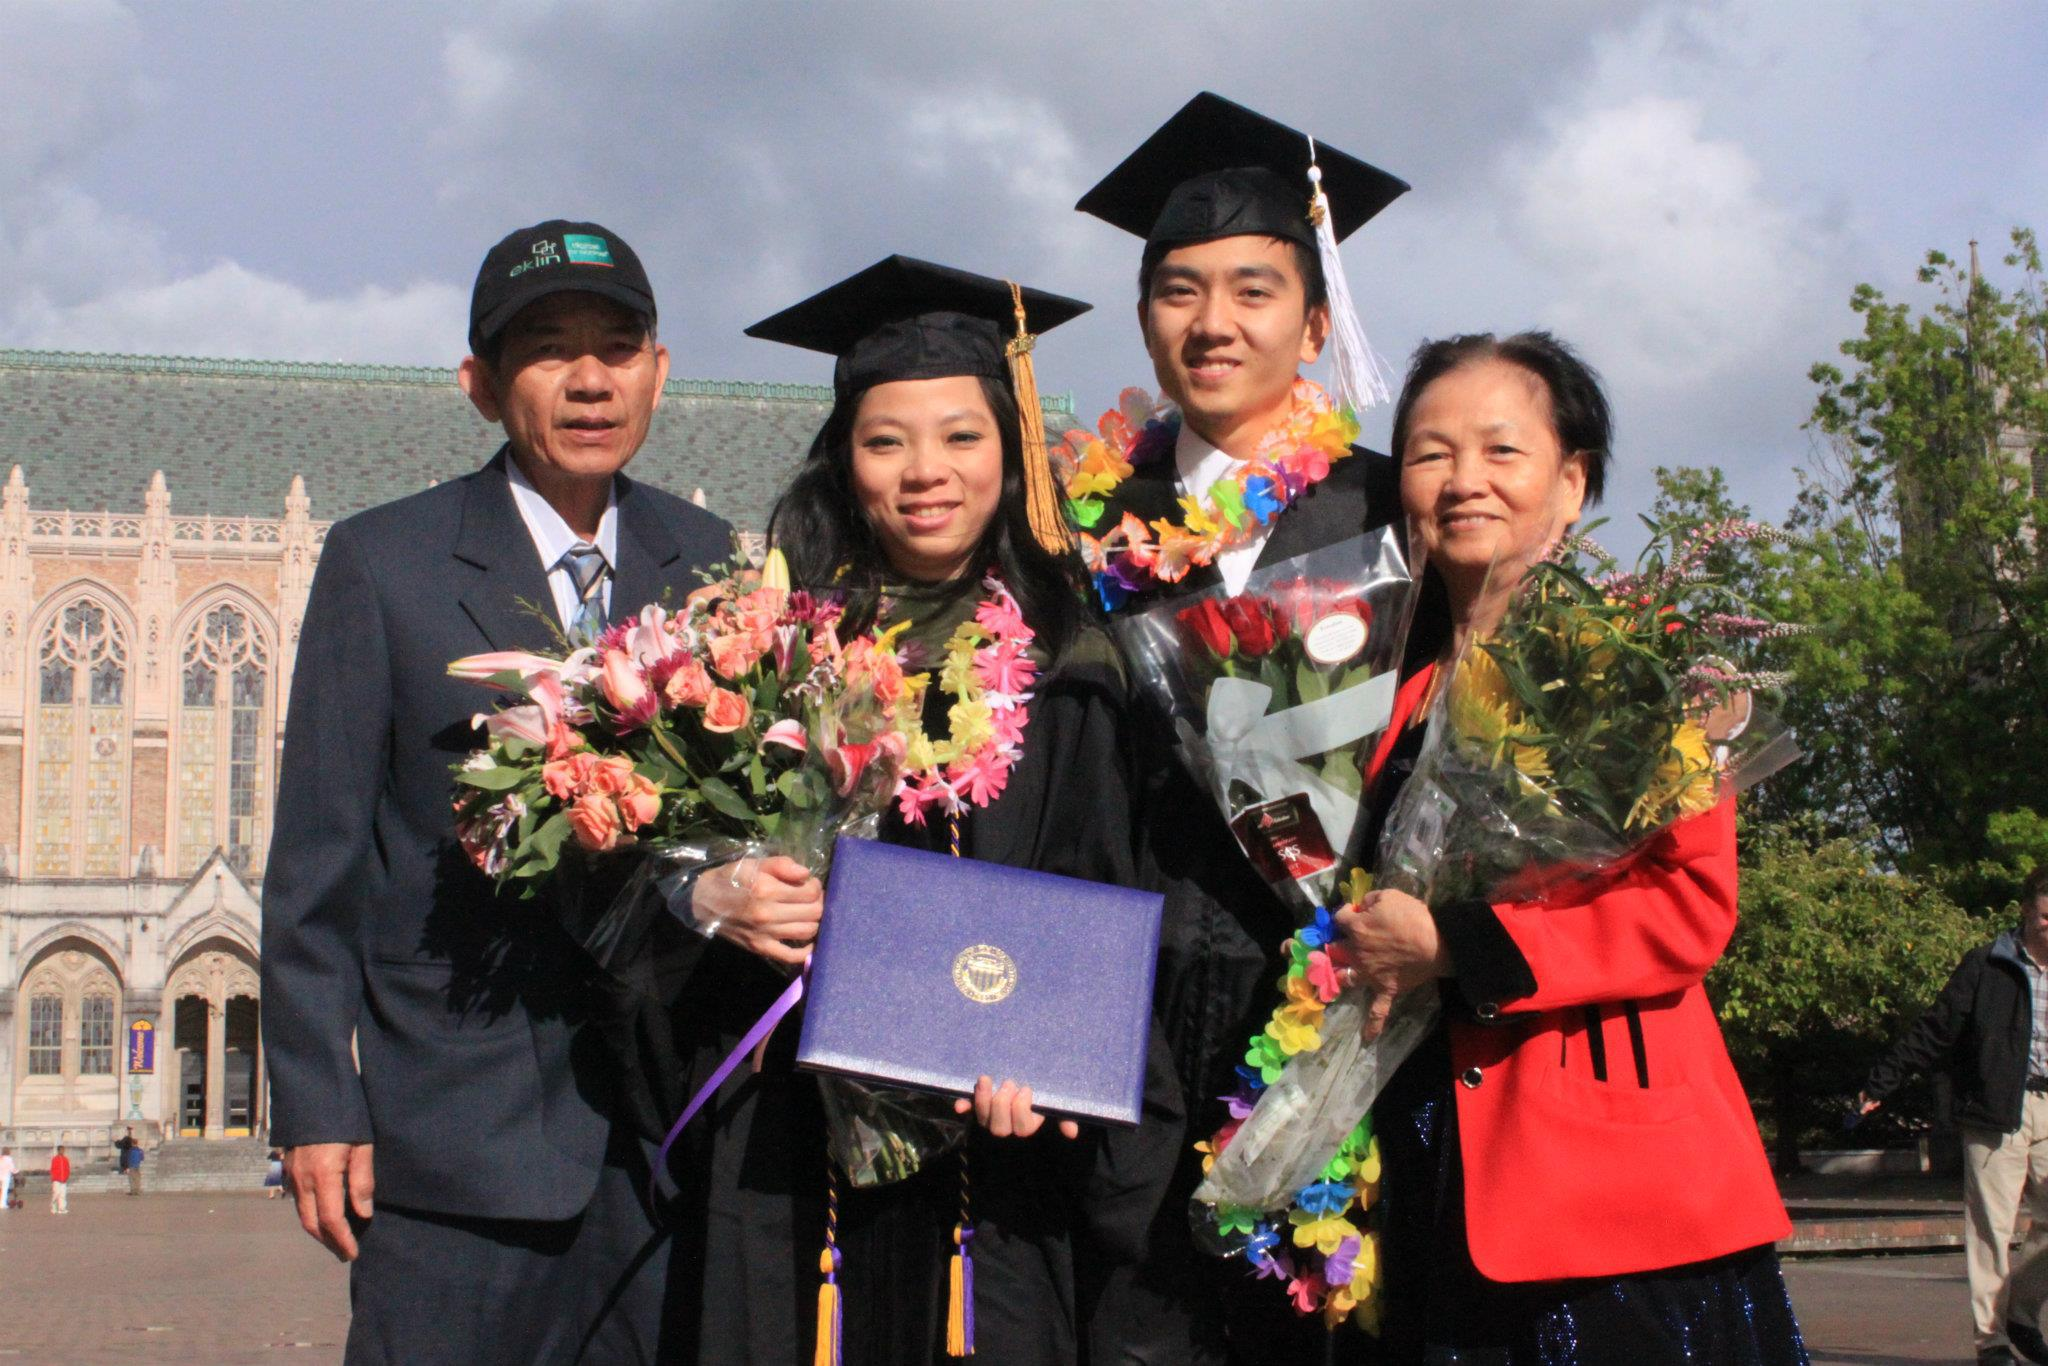 Both Bruce and his sister graduated college in 2012